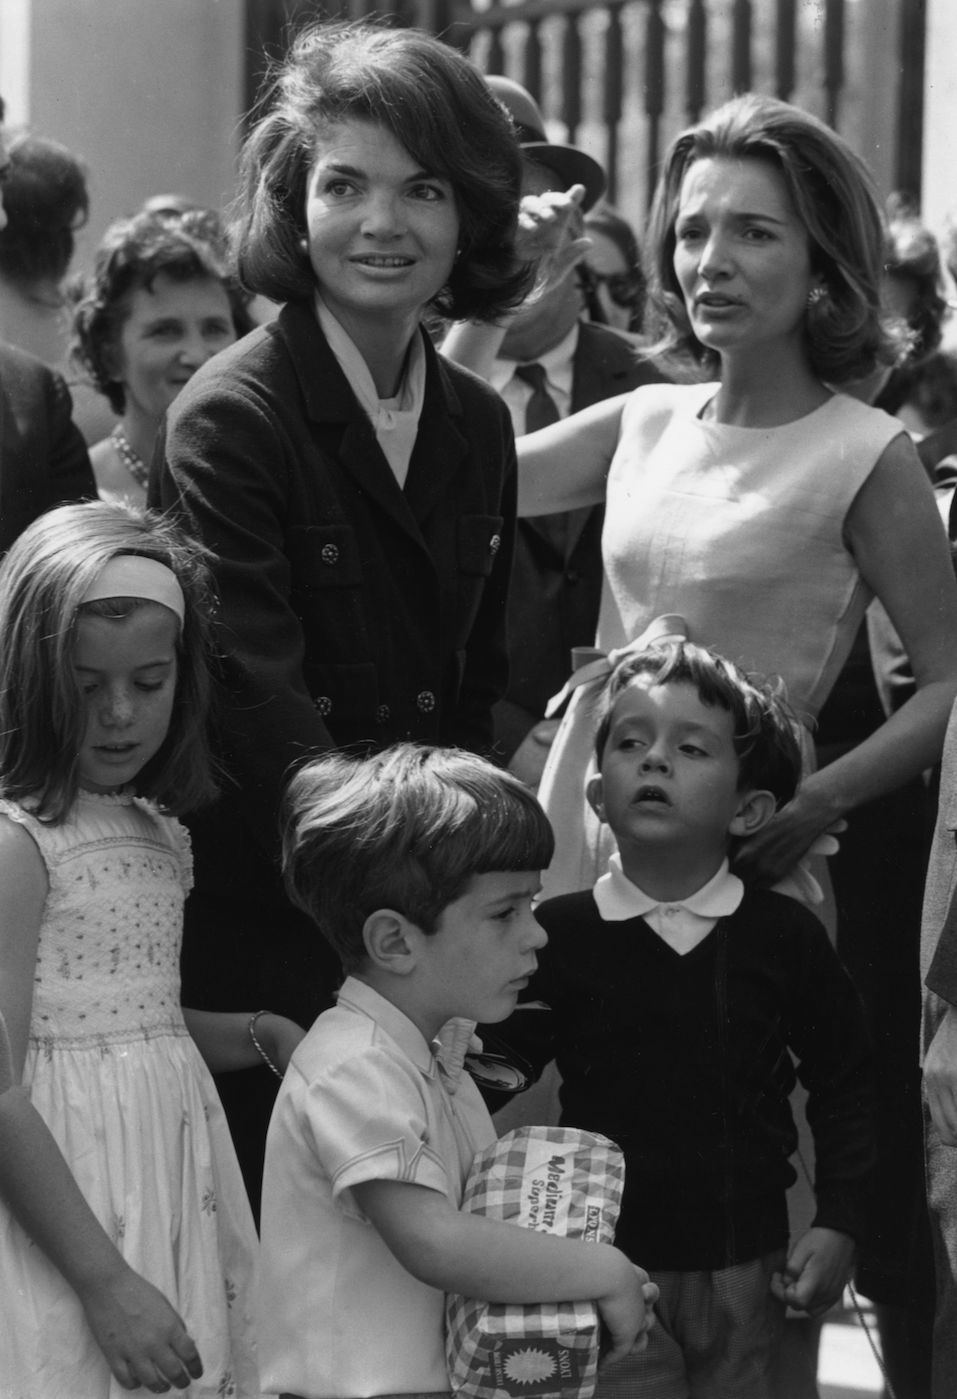 Jackie Kennedy on left, widow of president John Kennedy, with her children